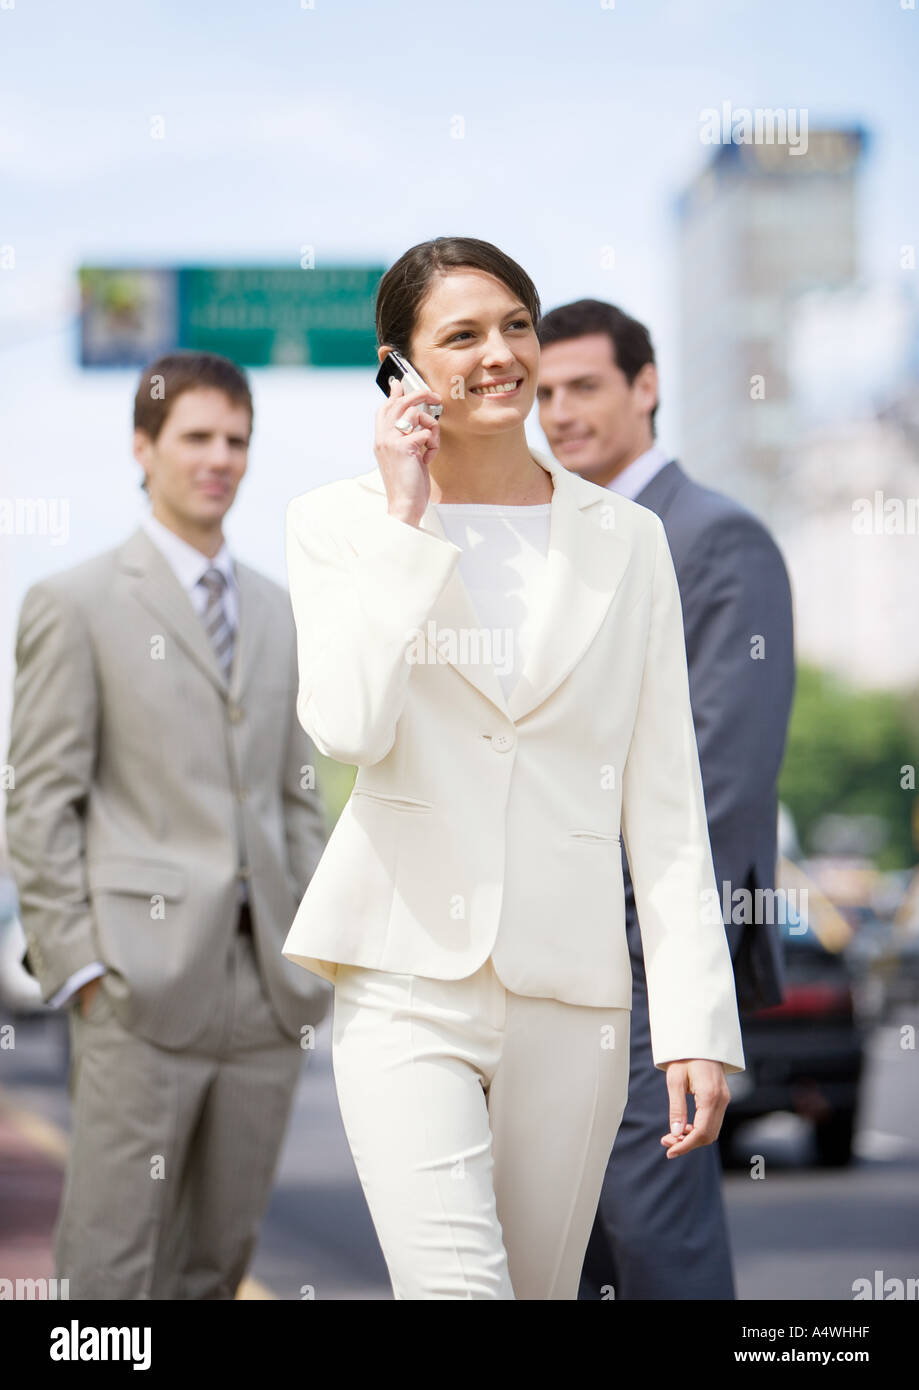 Young businesswoman walking and using cellphone while two businessmen watch in background Stock Photo